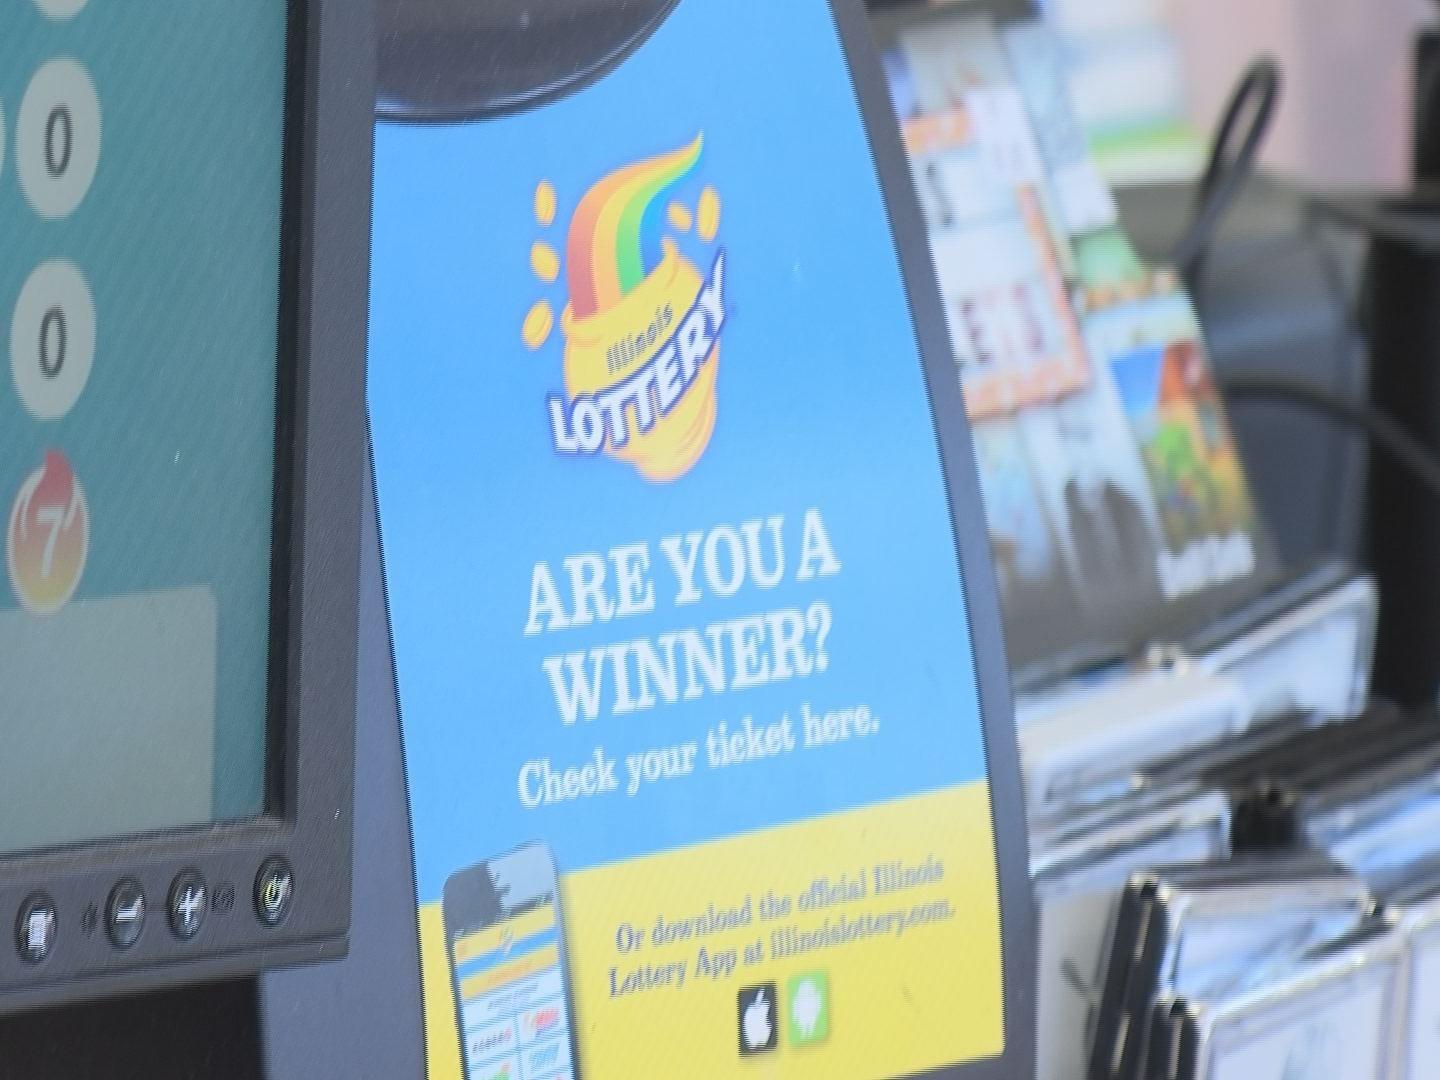 Times Running Out for Powerball And Mega Millions in IL